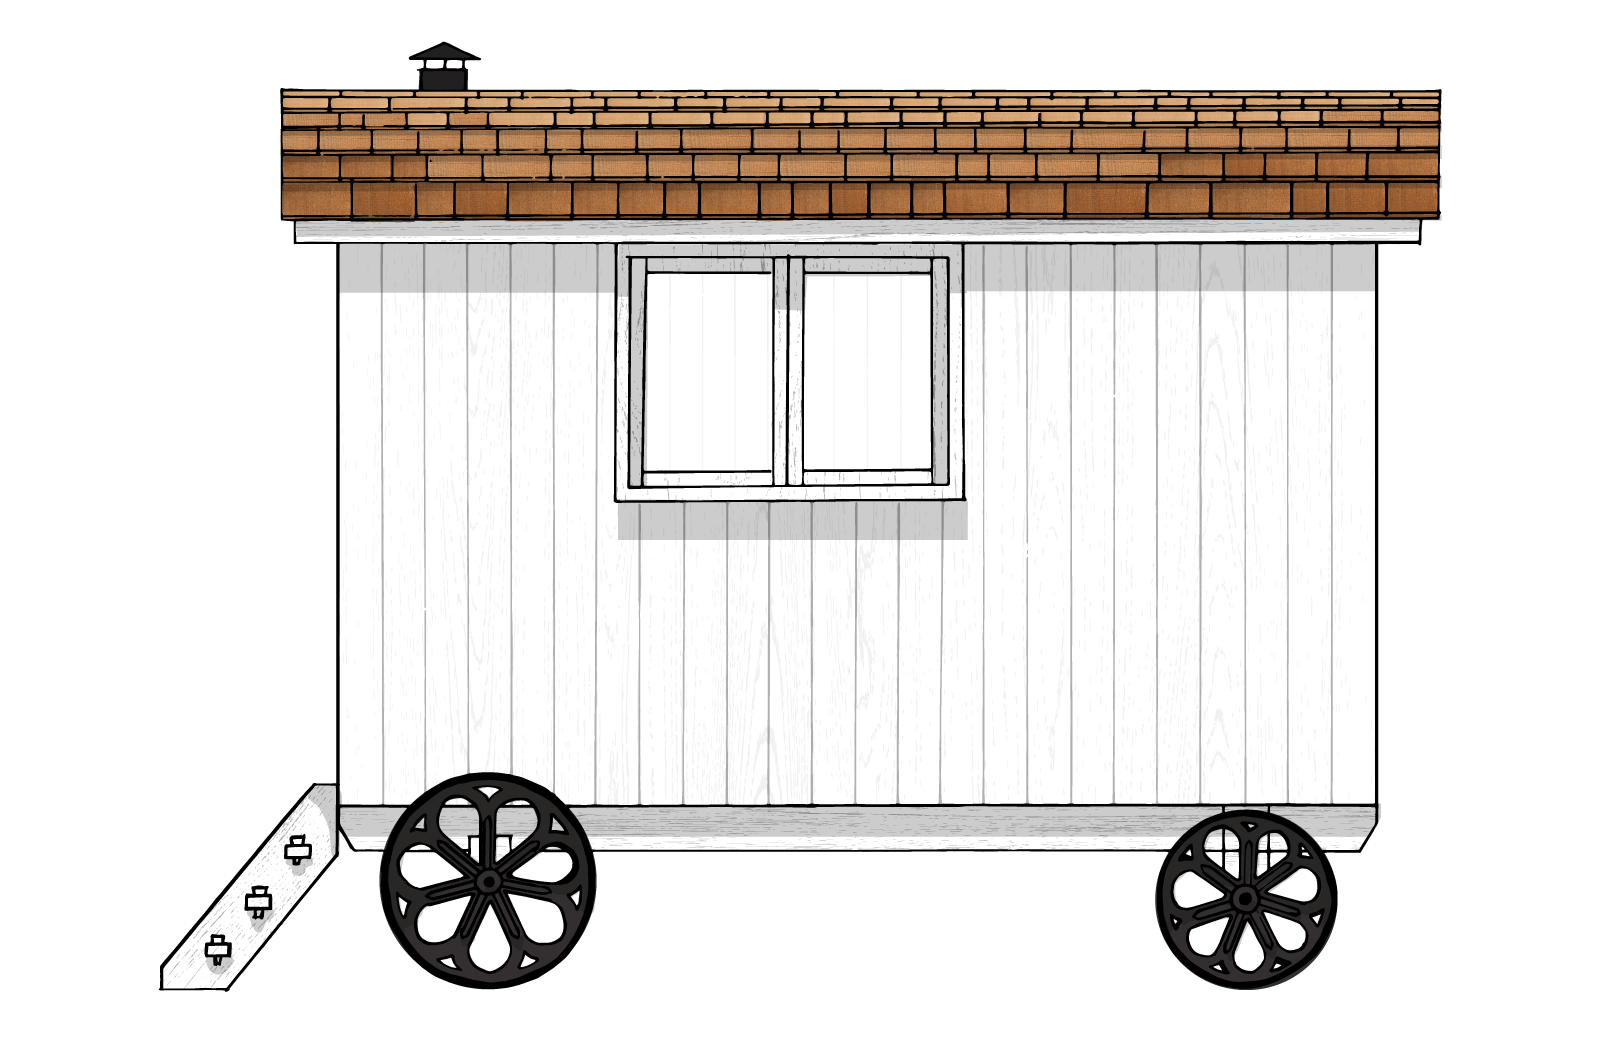 the exterior front elevation of a gute shepherd hut